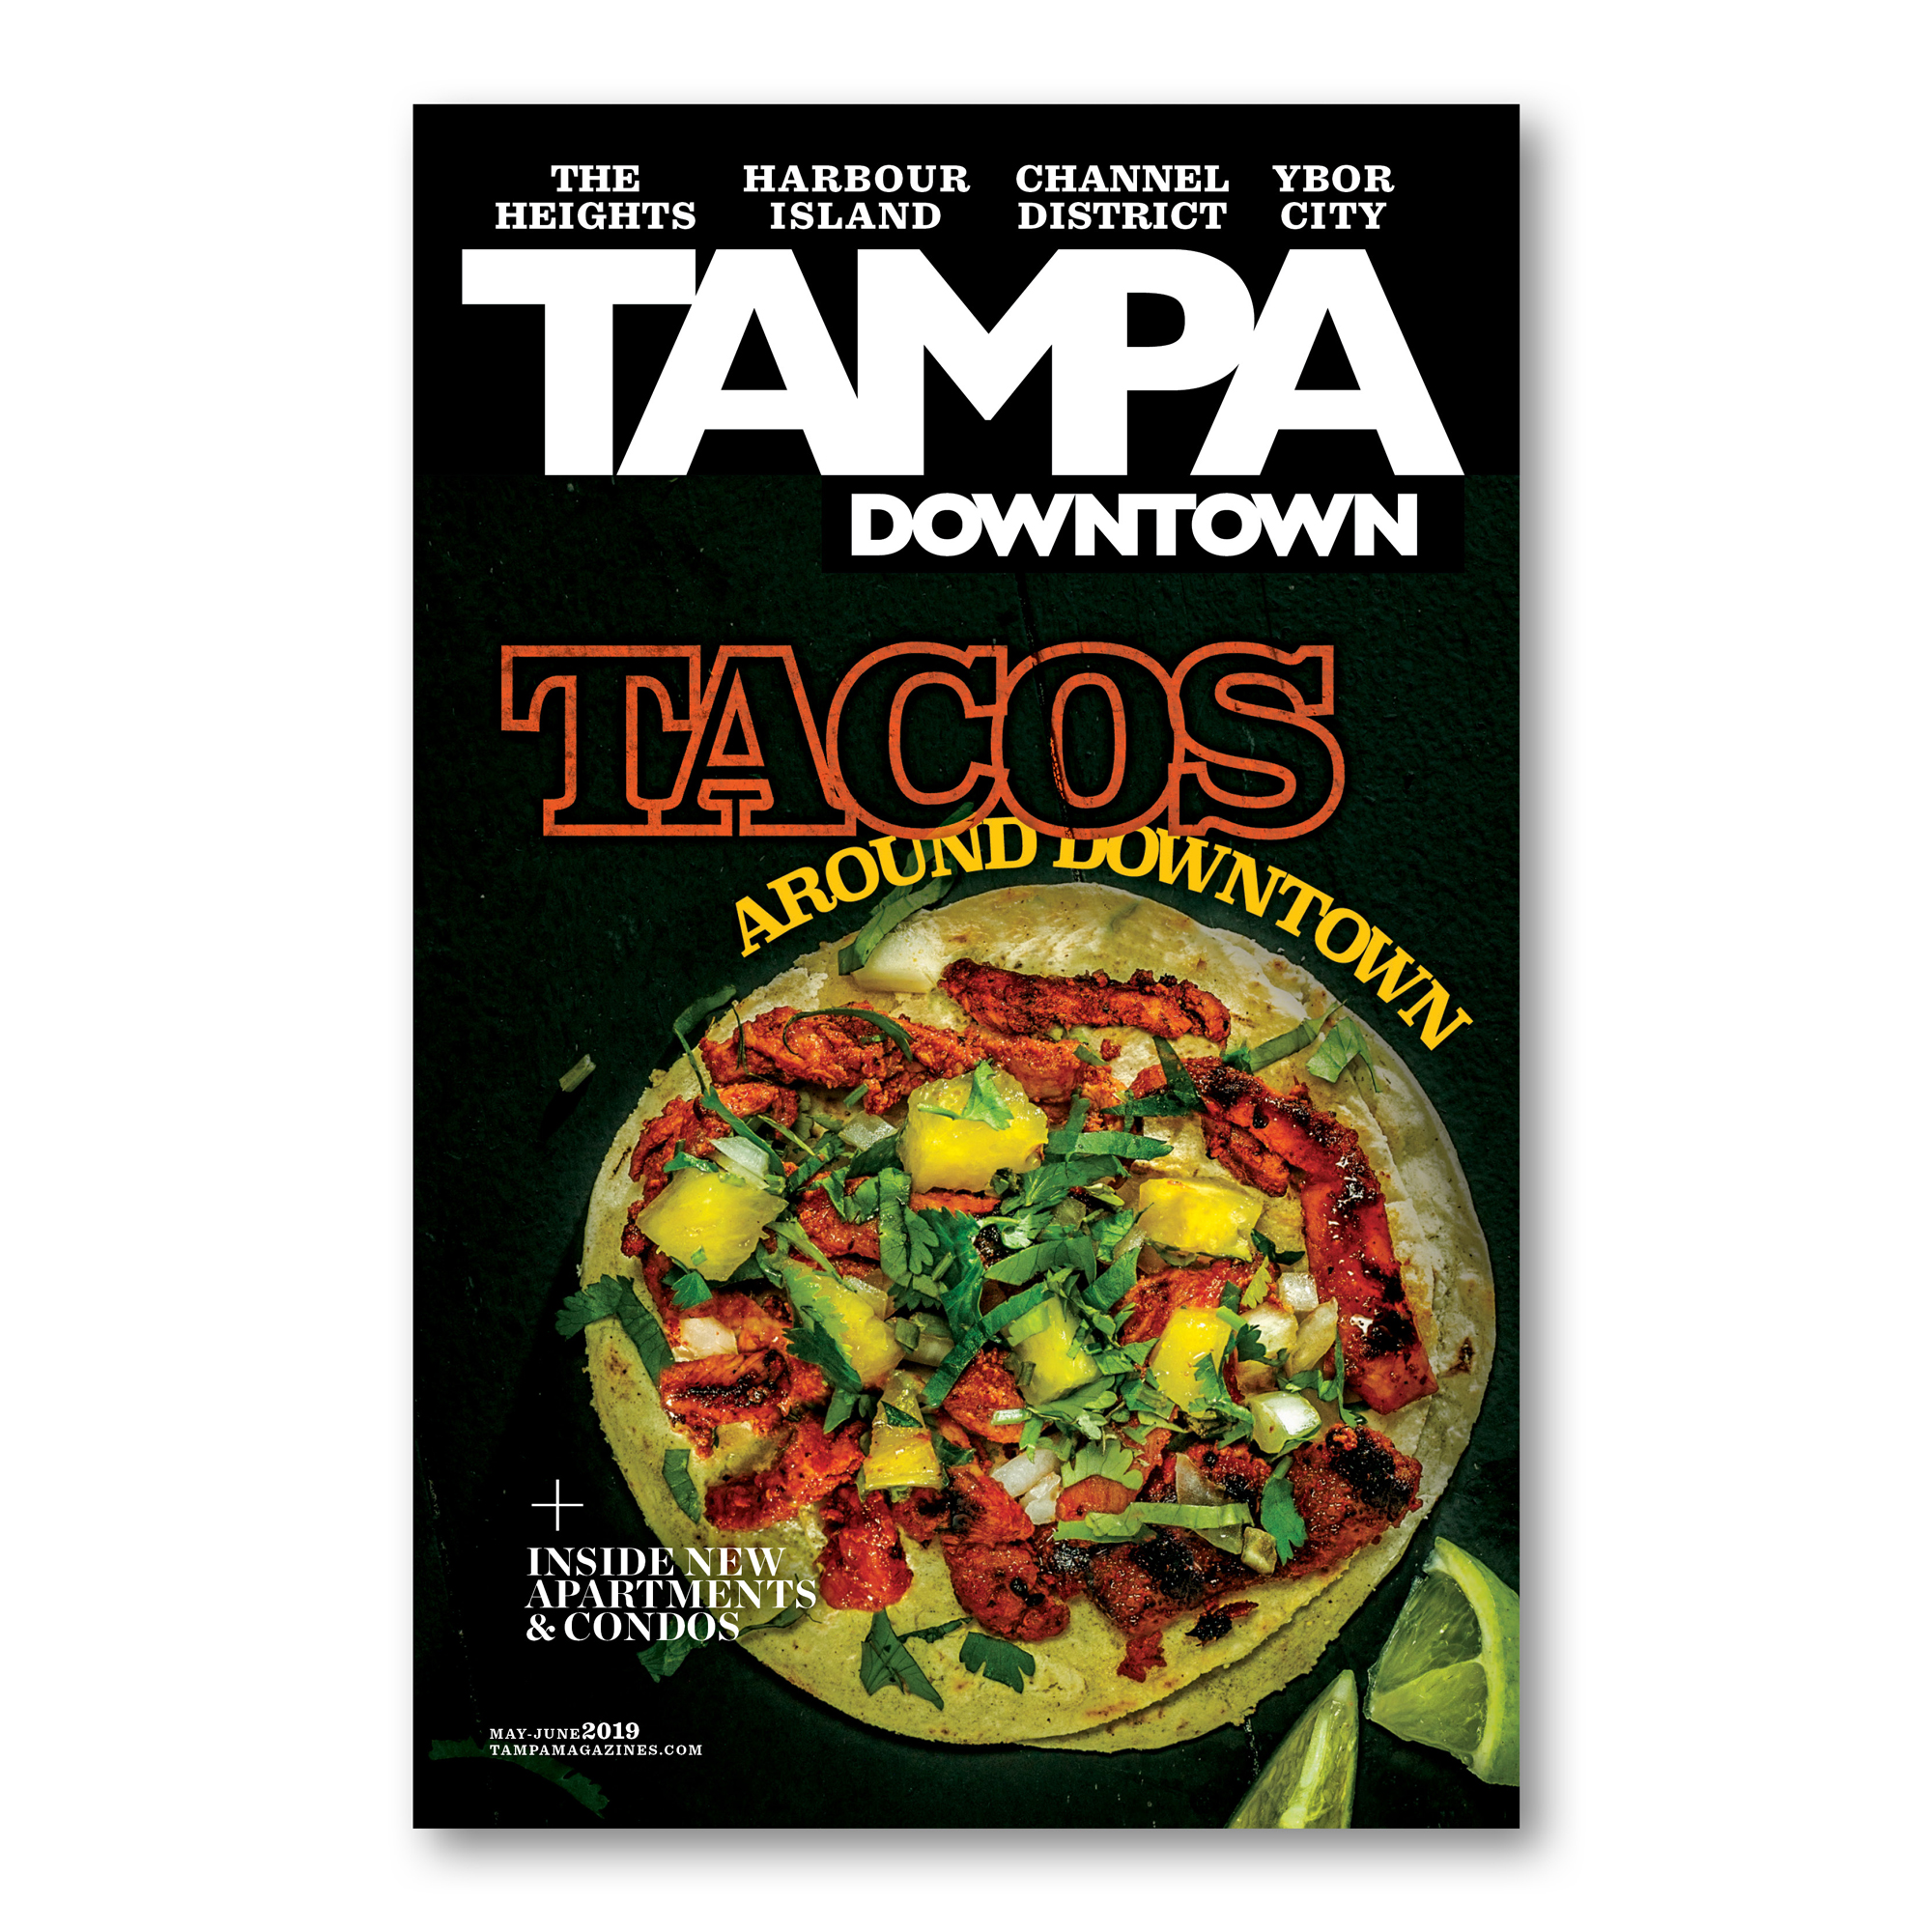 Tampa-Covers6.jpg